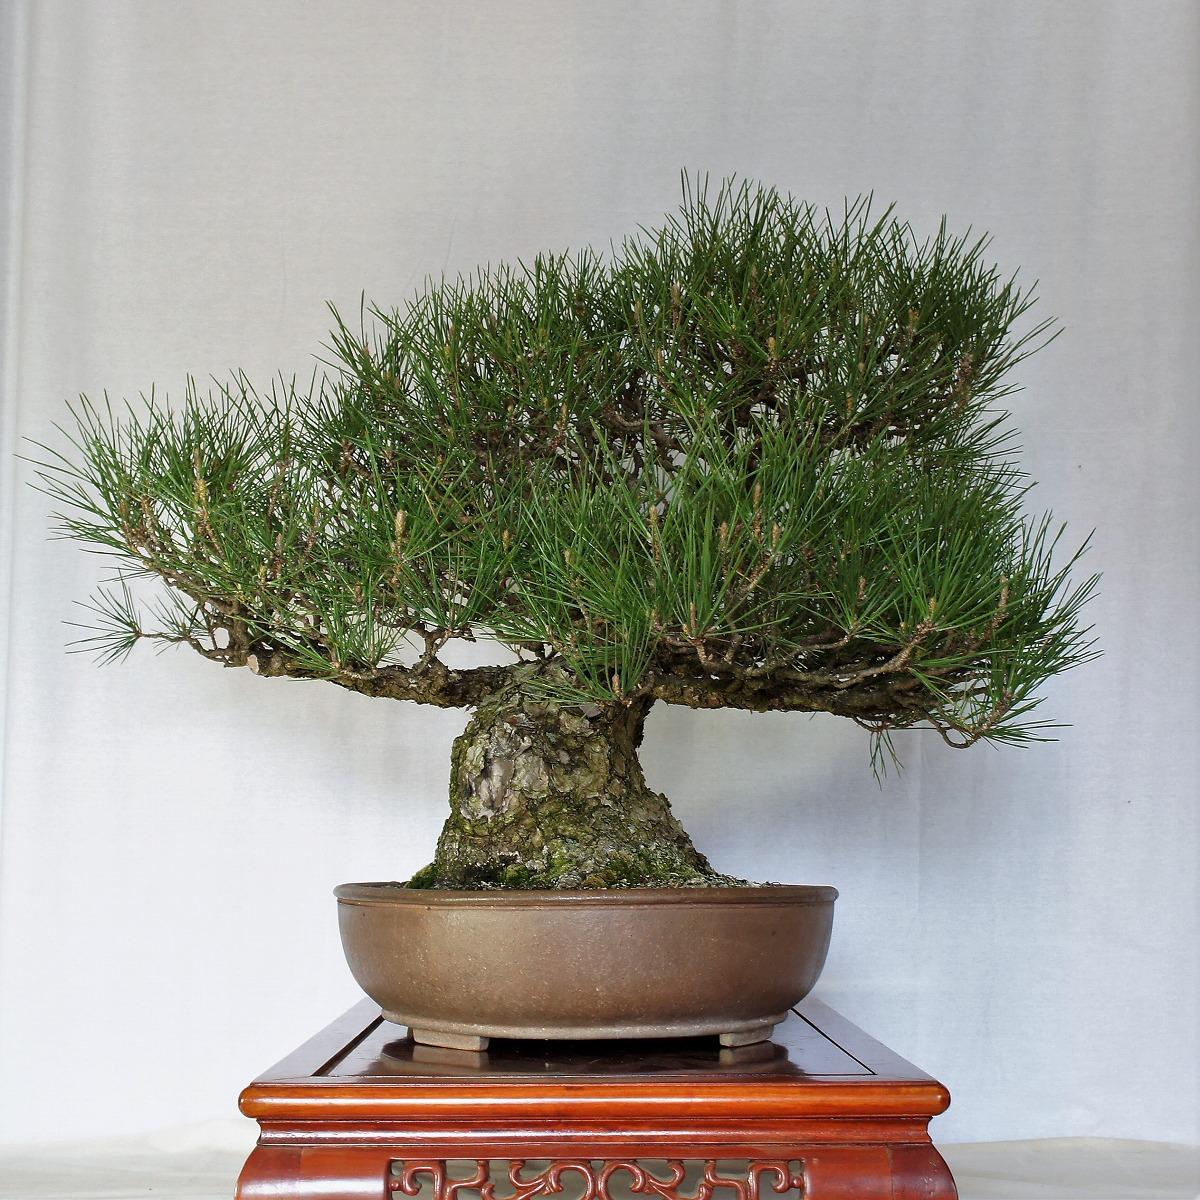 Bonsai Toriumi Offers Bonsai Trees Pots And Supplies Online Catalogue And Sales In Saitama Japan